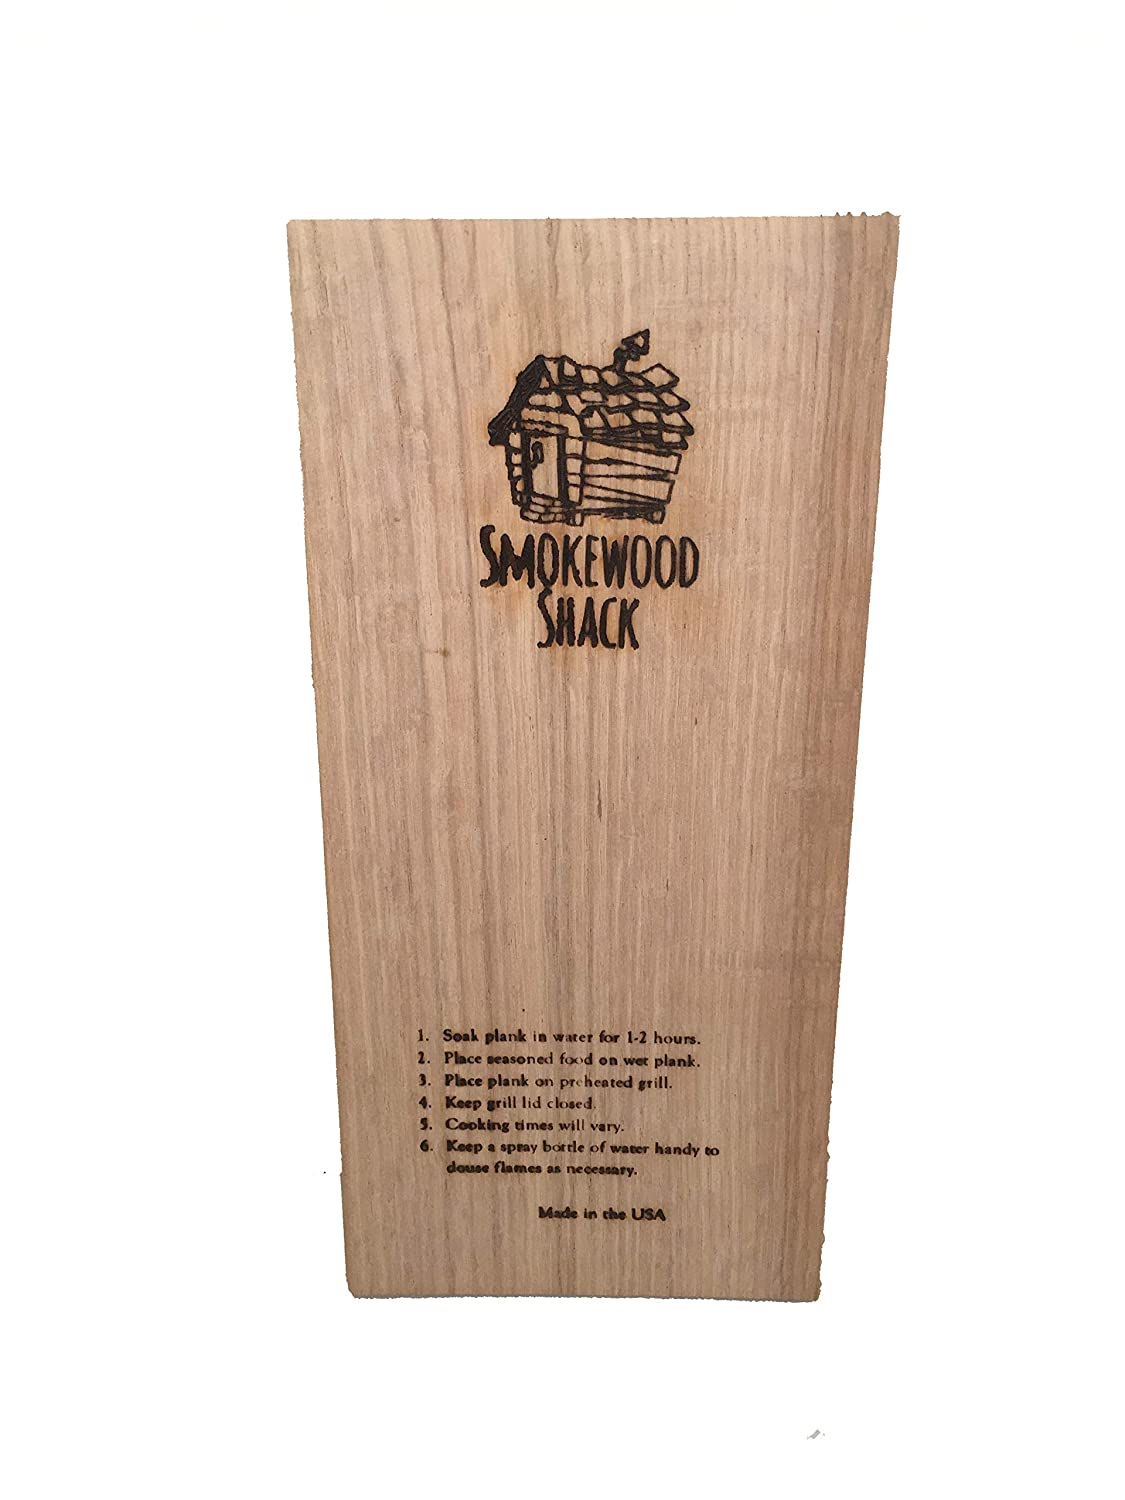 Smokewood Shack Oak Grilling Plank - DELIVERY INCLUDED